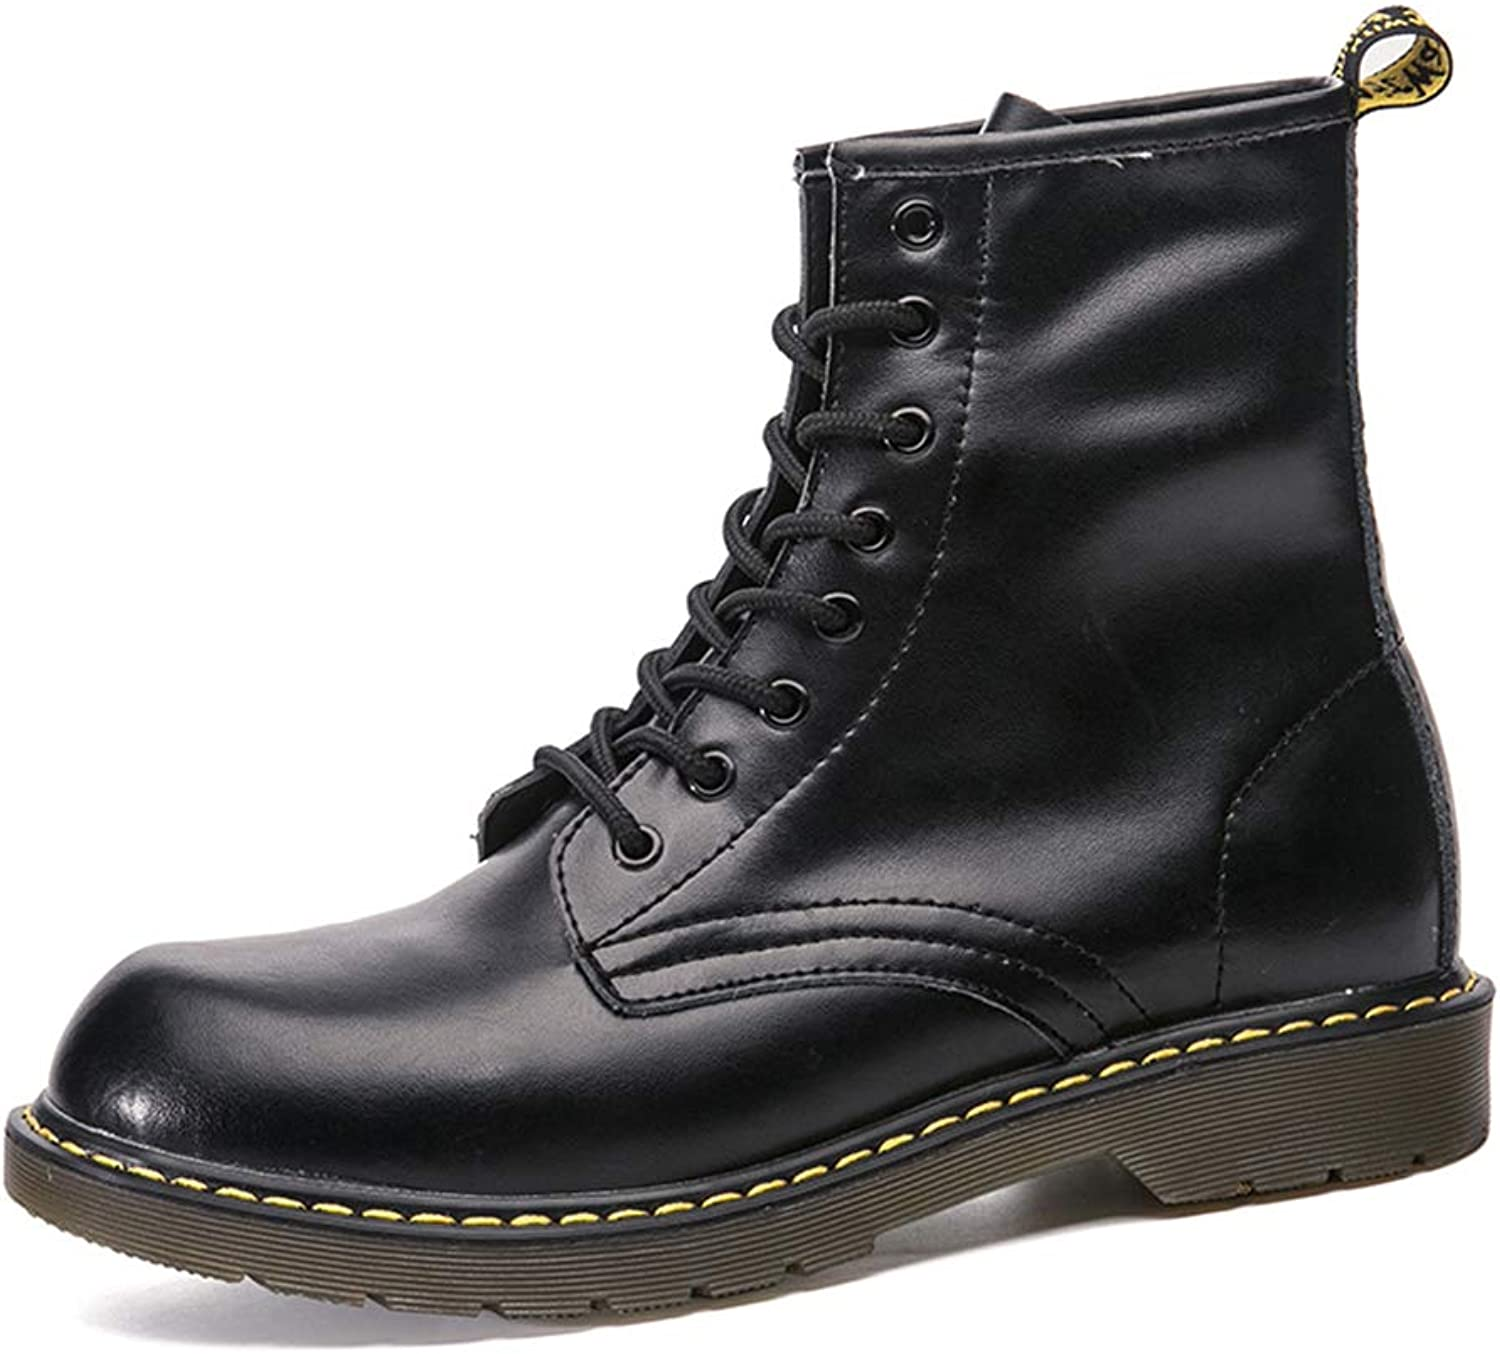 LEFT&RIGHT Boots Mens Ankle Boots, Martin Boots Lace Up Genuine Leather Motorcycle shoes Outdoor Army Combat Boots